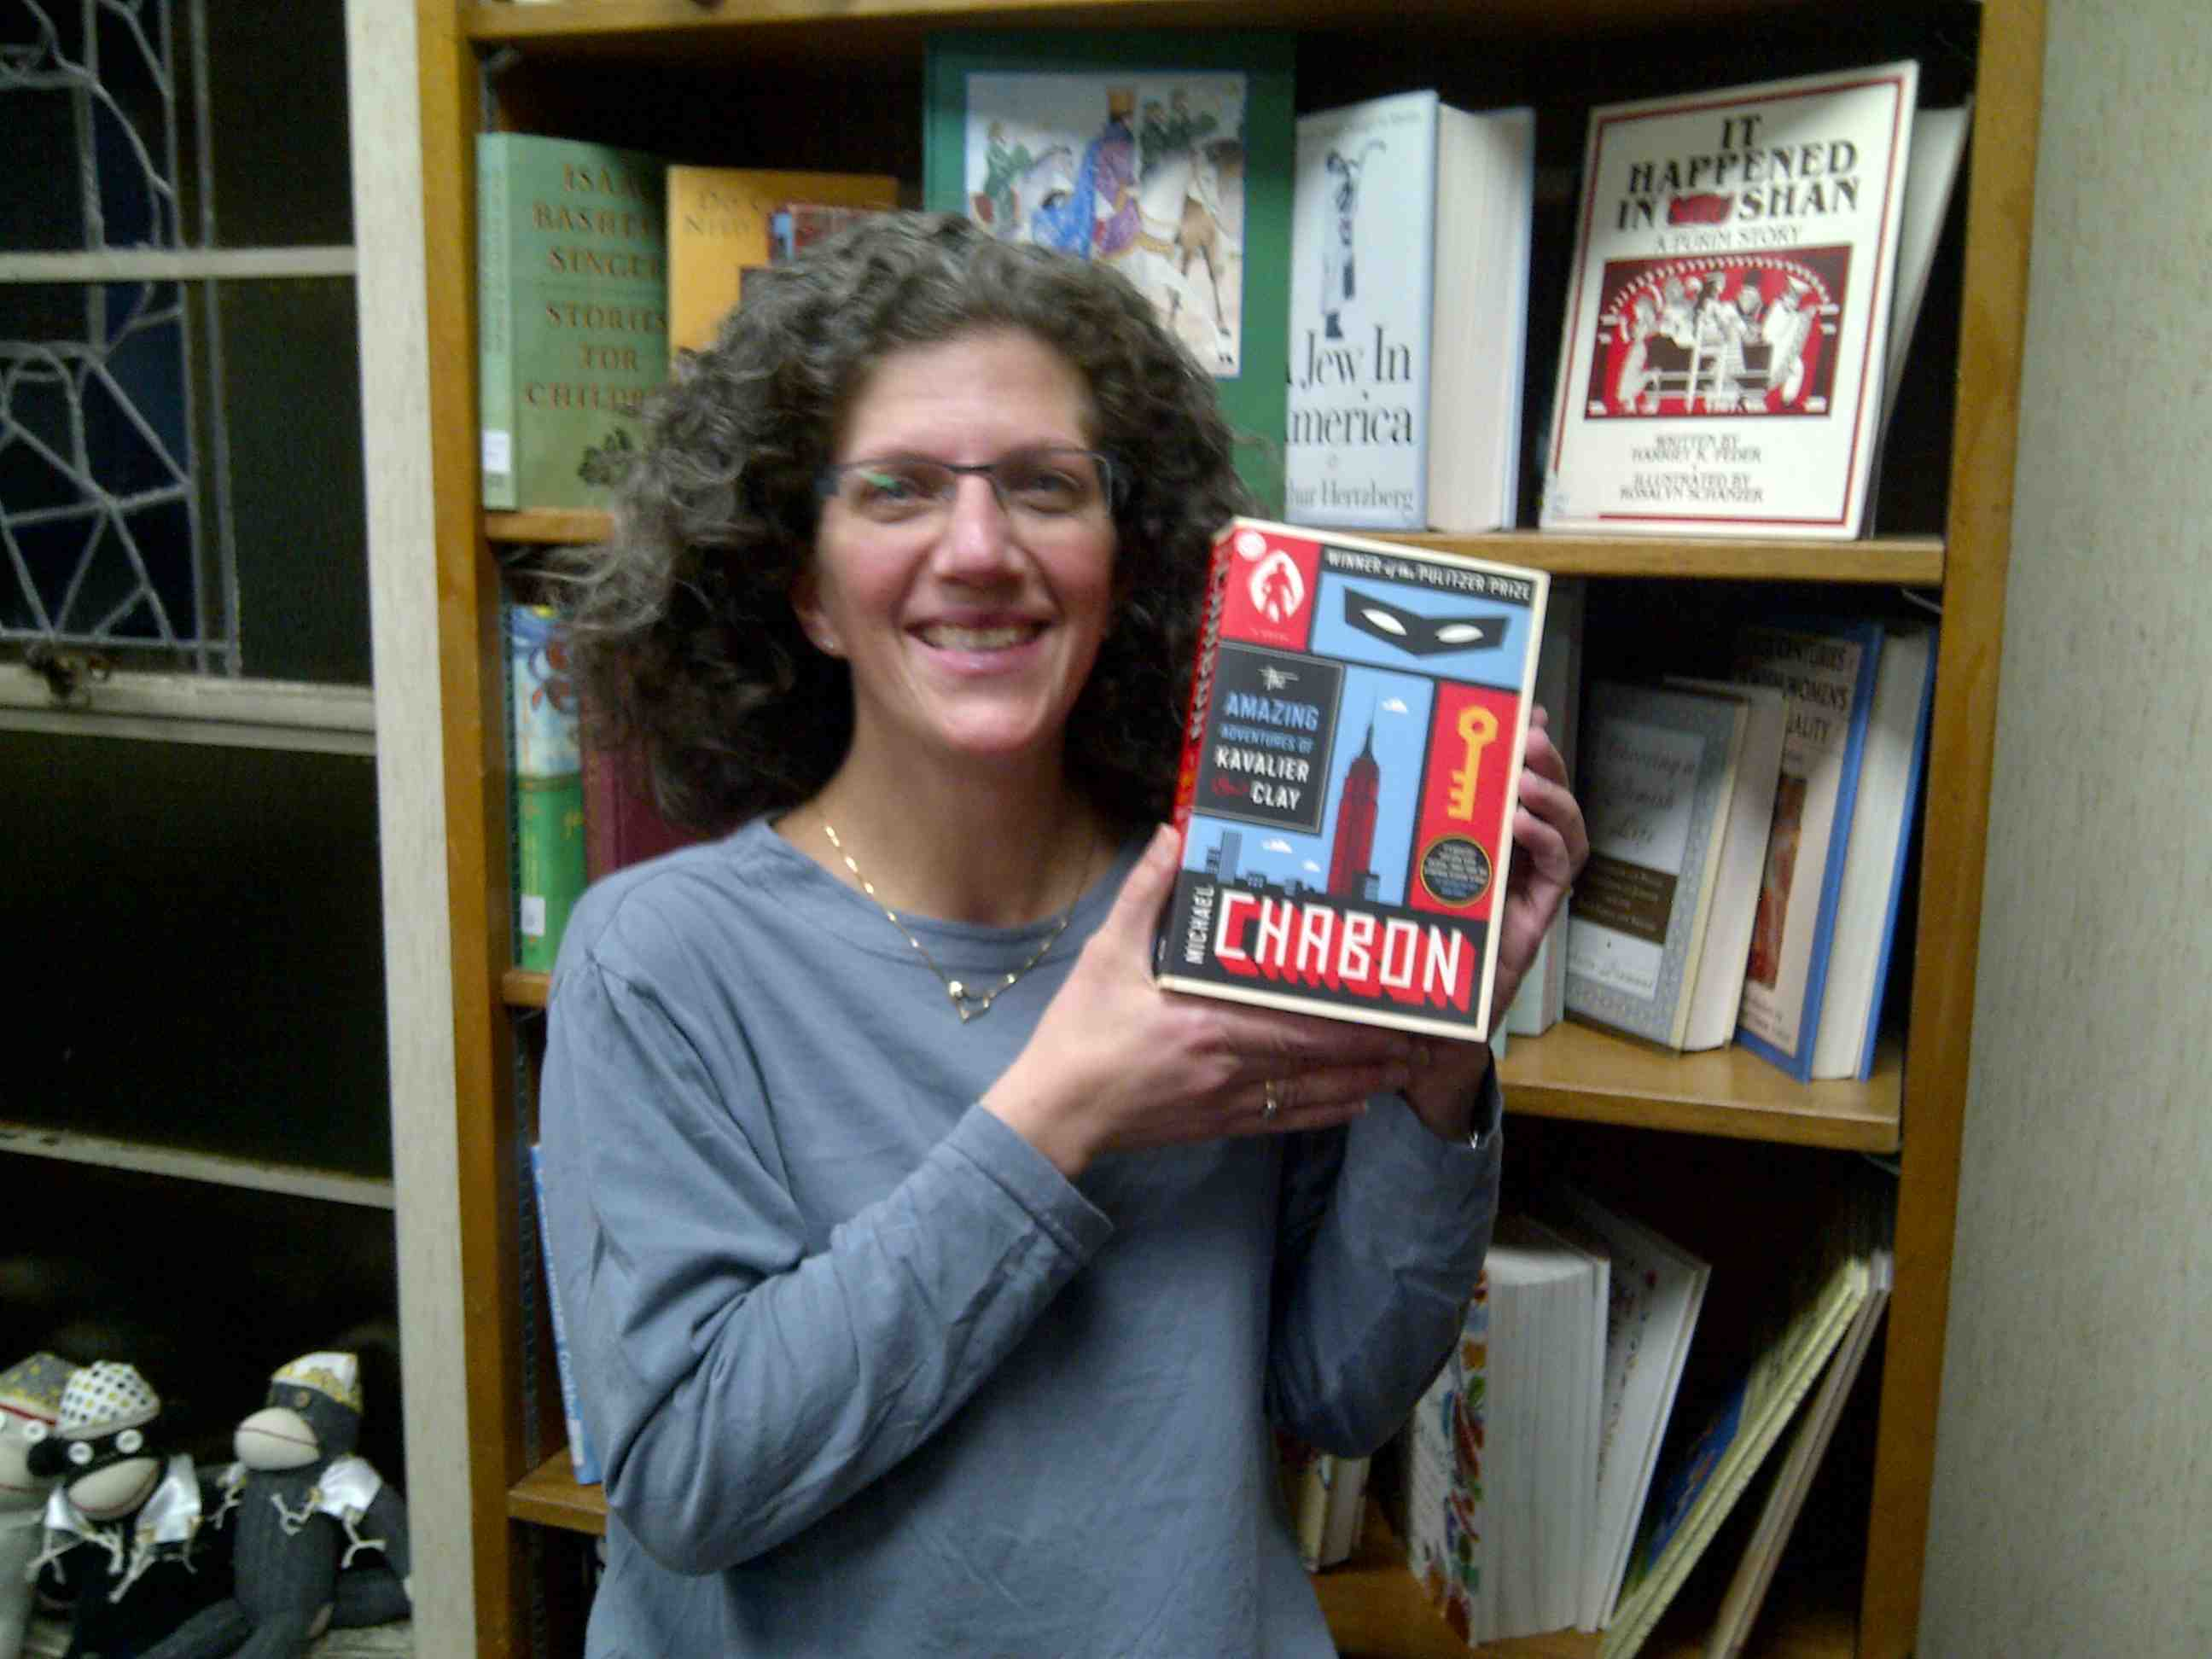 Carrie with book copy